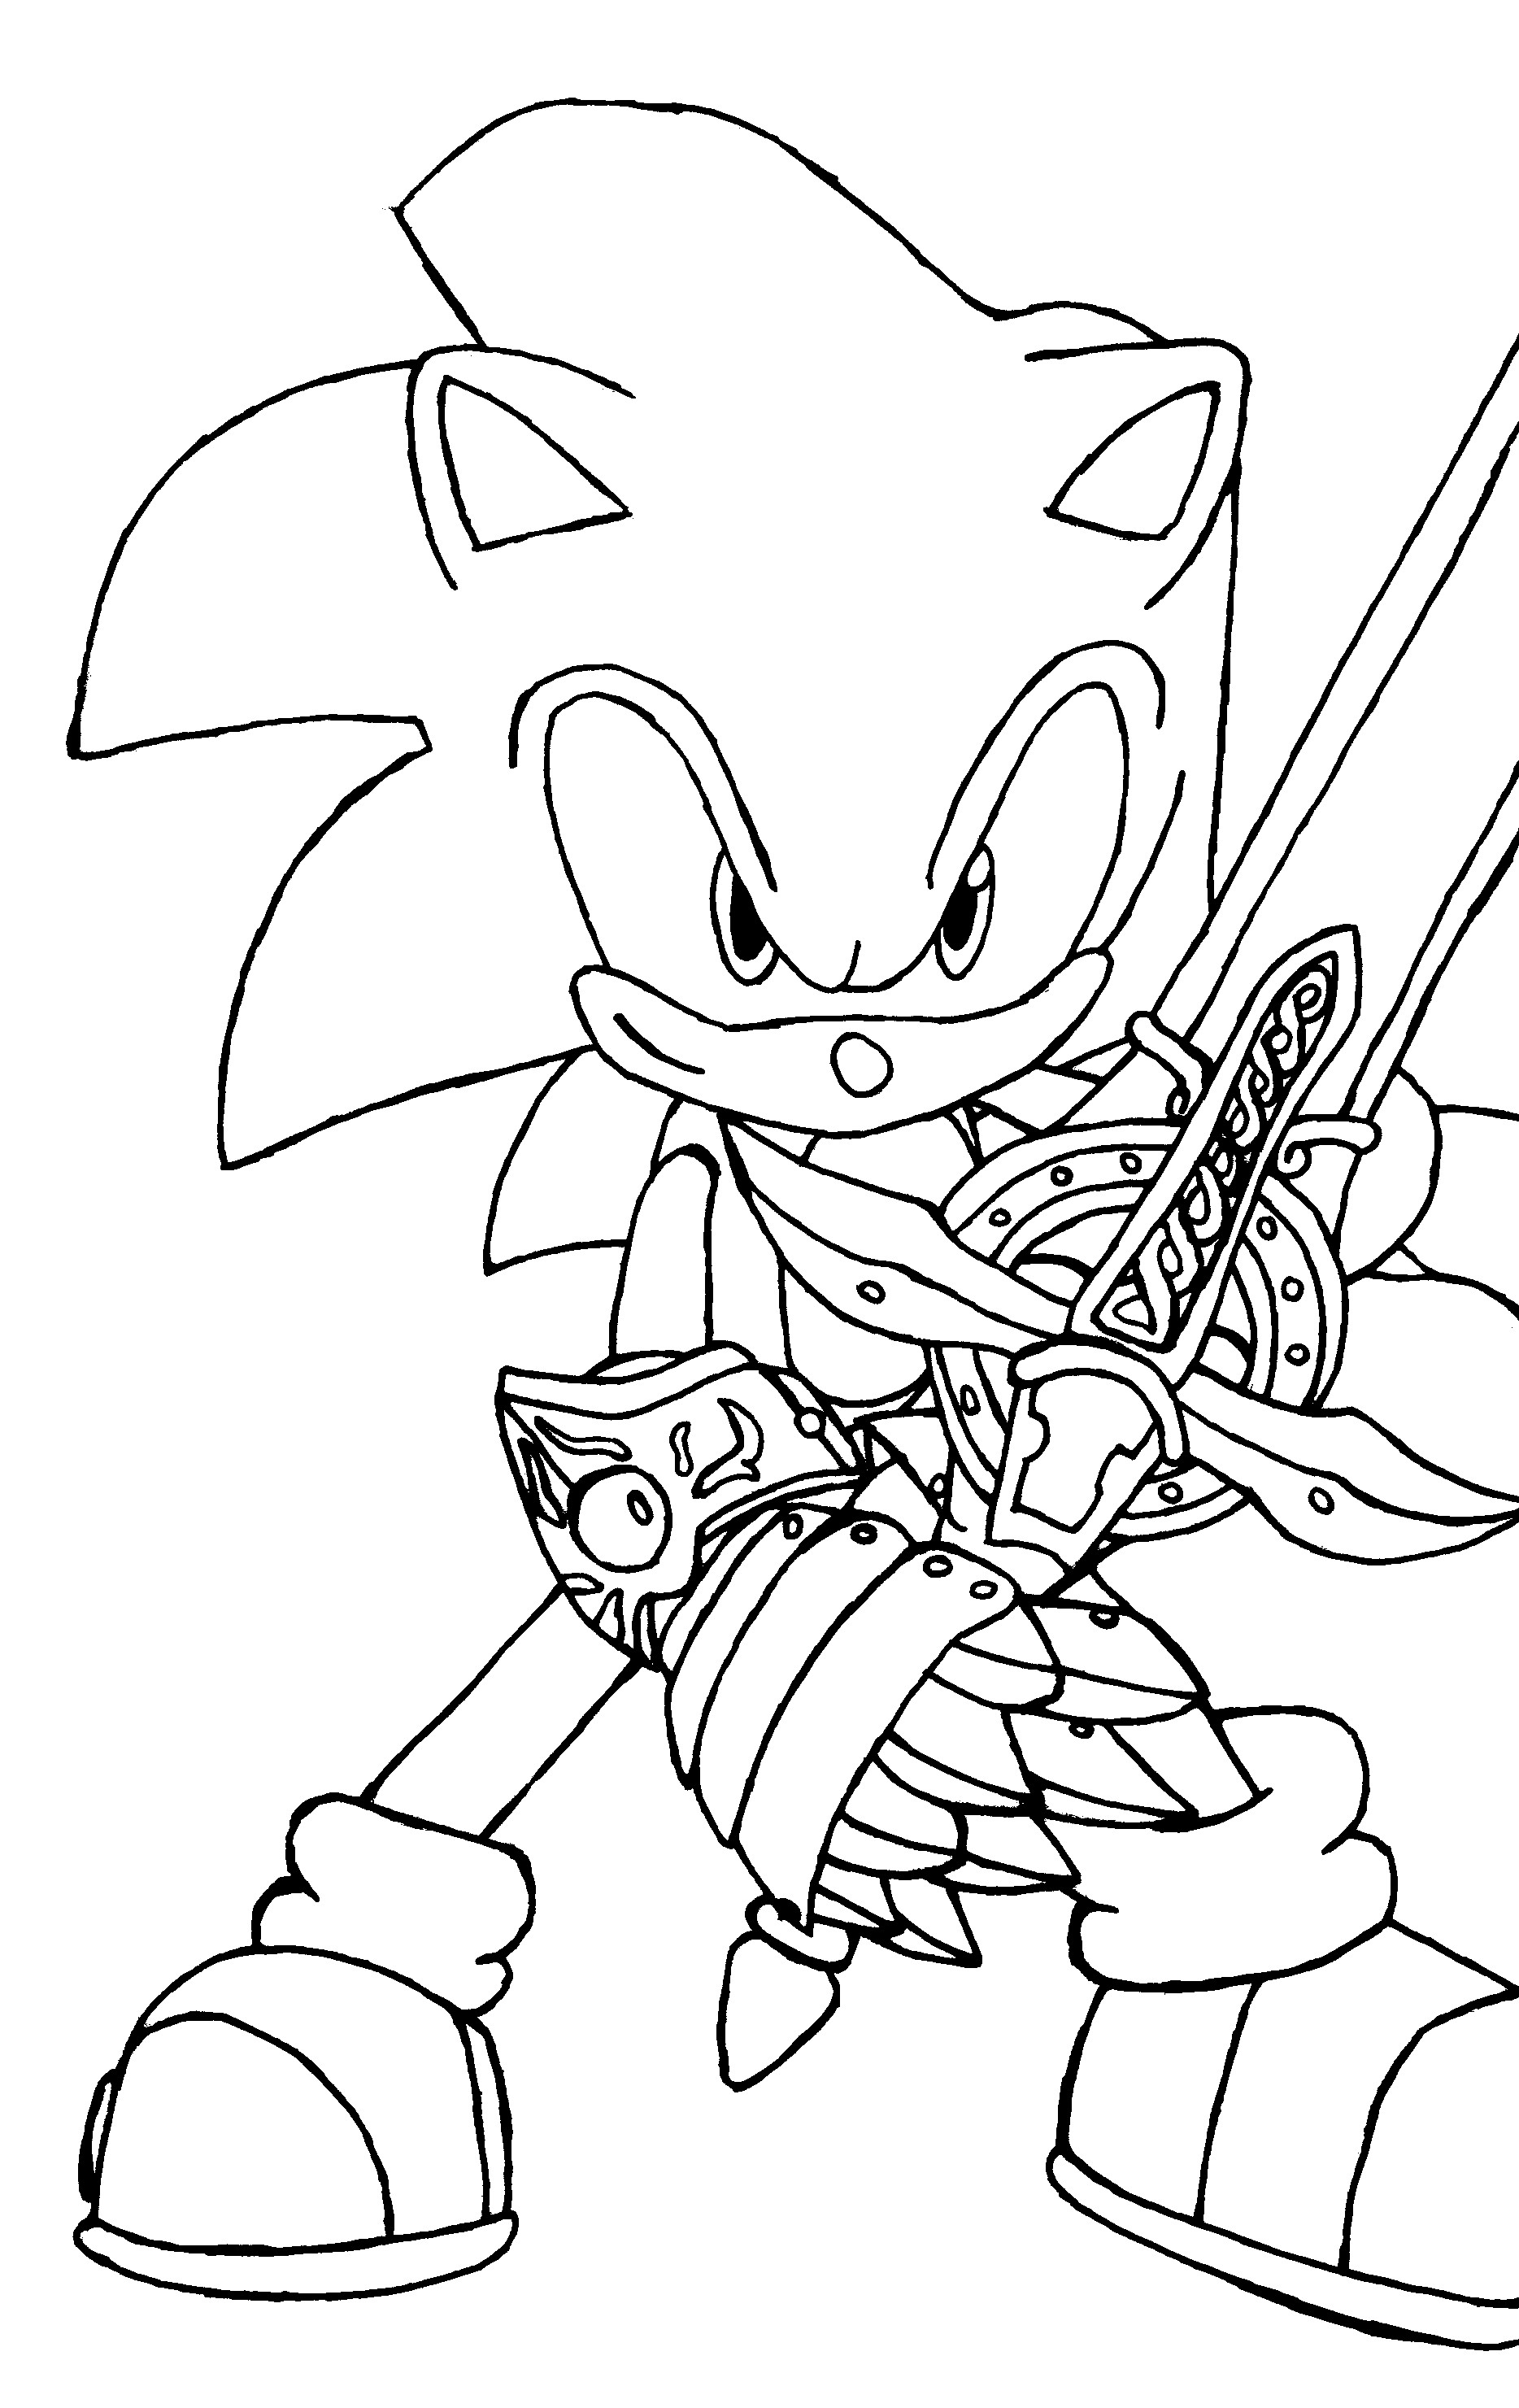 print pictures of sonic Sonic the Hedgehog Coloring Pages Free